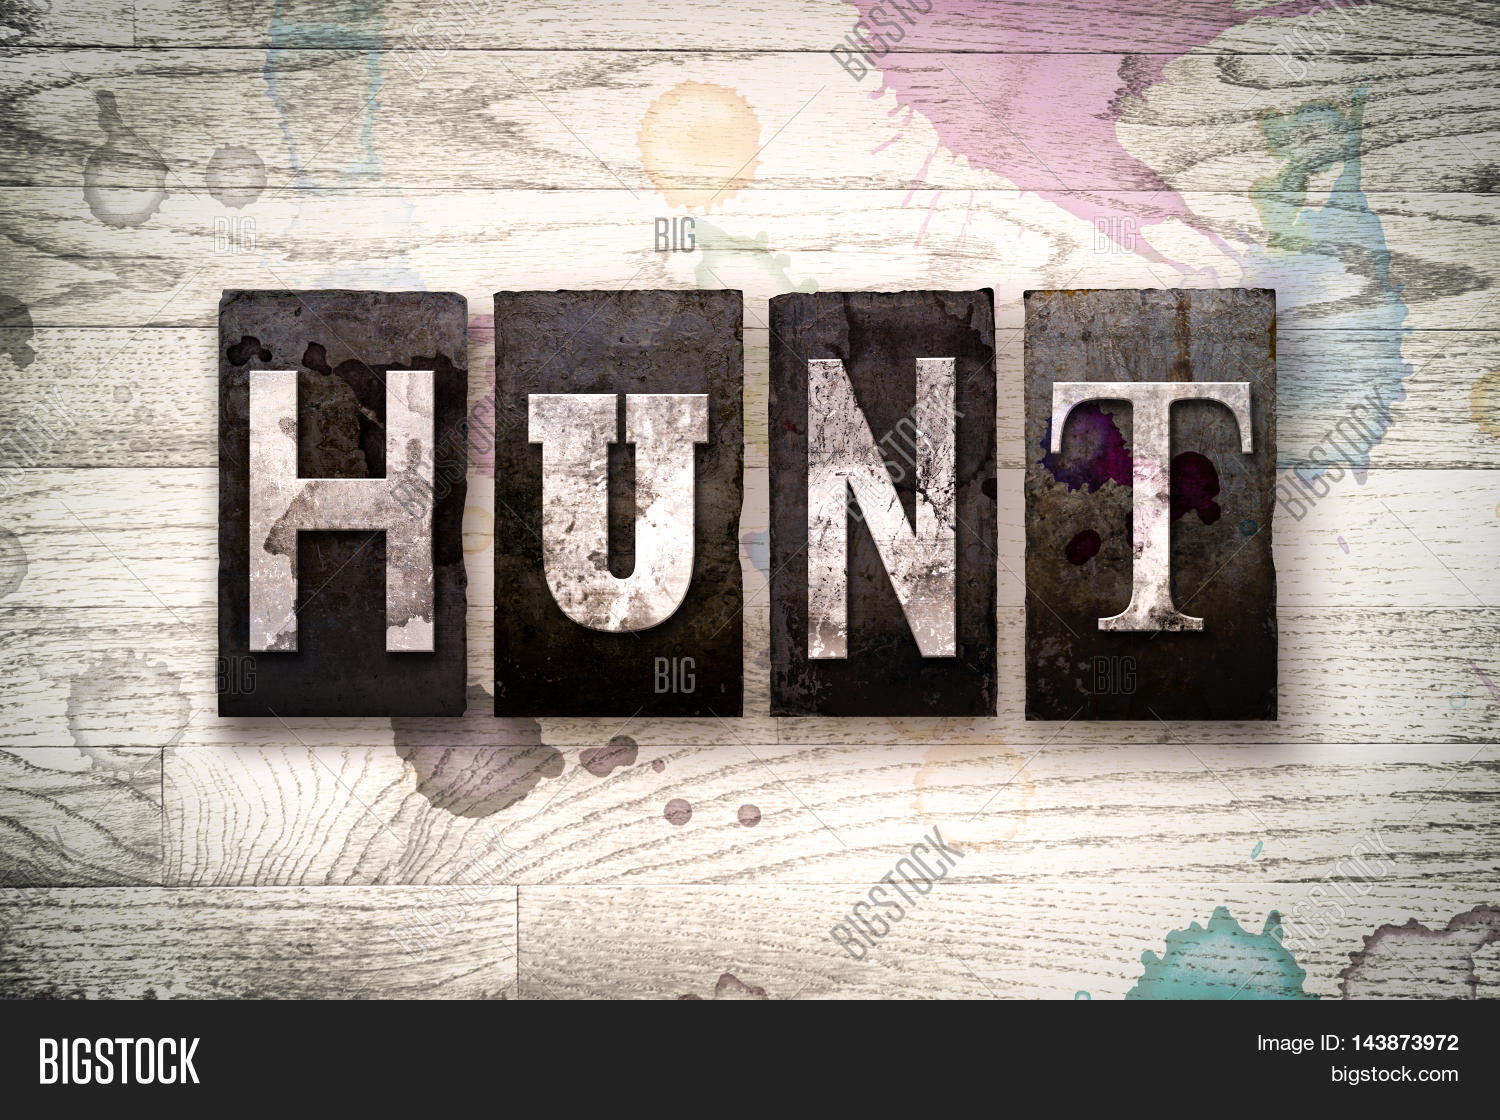 blocks,concept,easter,egg,hunt,grunge,hunted,hunter,hunting,ink,letterpress,letters,look,manhunt,metal,paint,retro,scavenger,search,season,sport,theme,typescript,vintage,whitewashed,wood